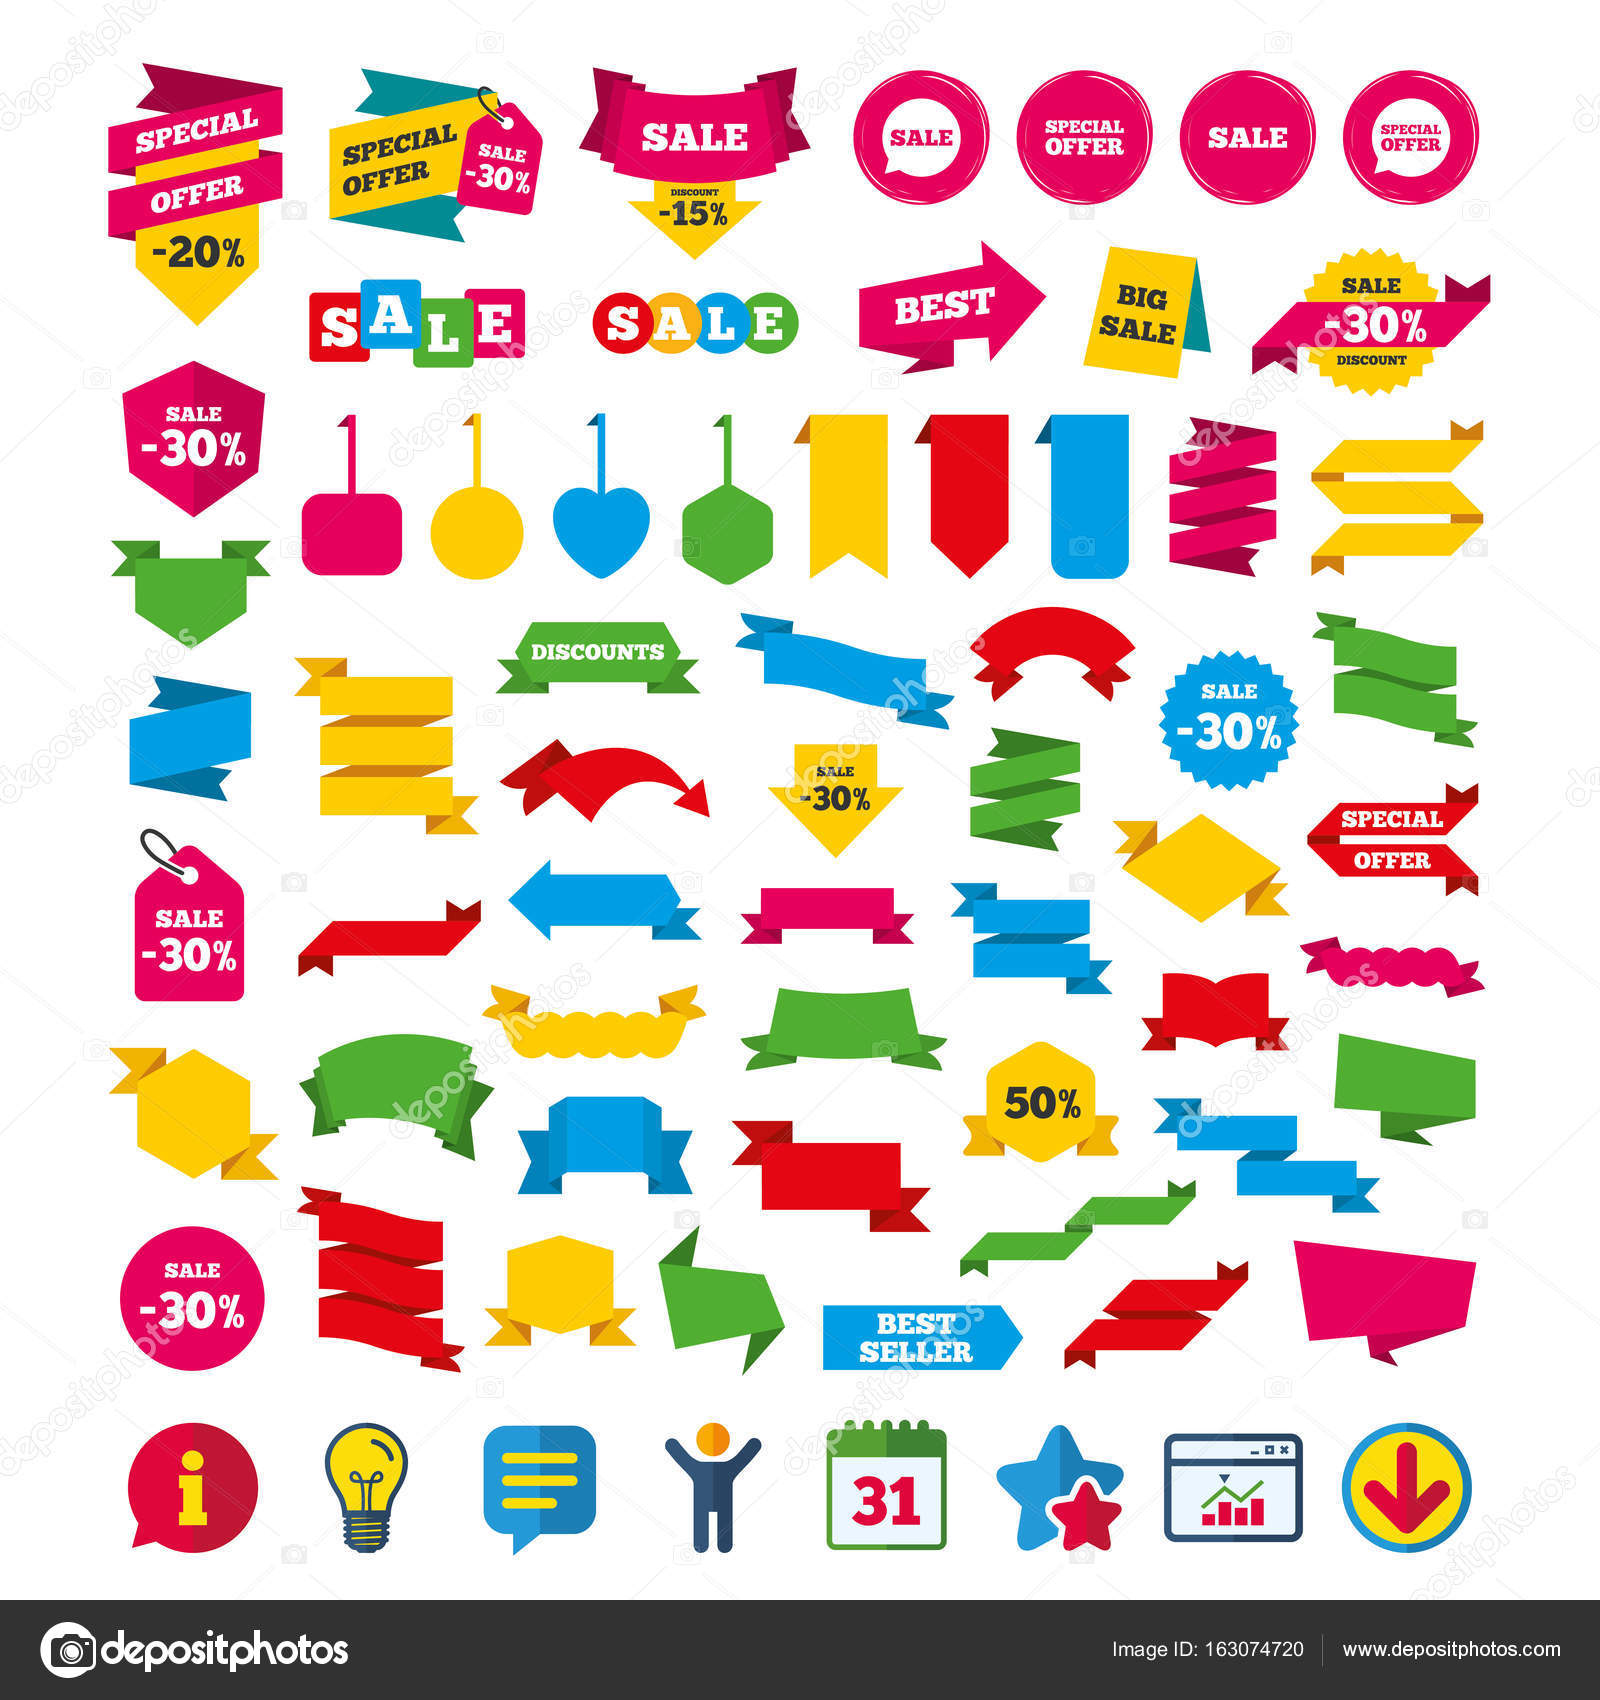 Sale icons special offer speech bubbles symbols stock vector special offer speech bubbles symbols shopping signs shopping tags banners and coupons signs calendar information and download icons biocorpaavc Choice Image